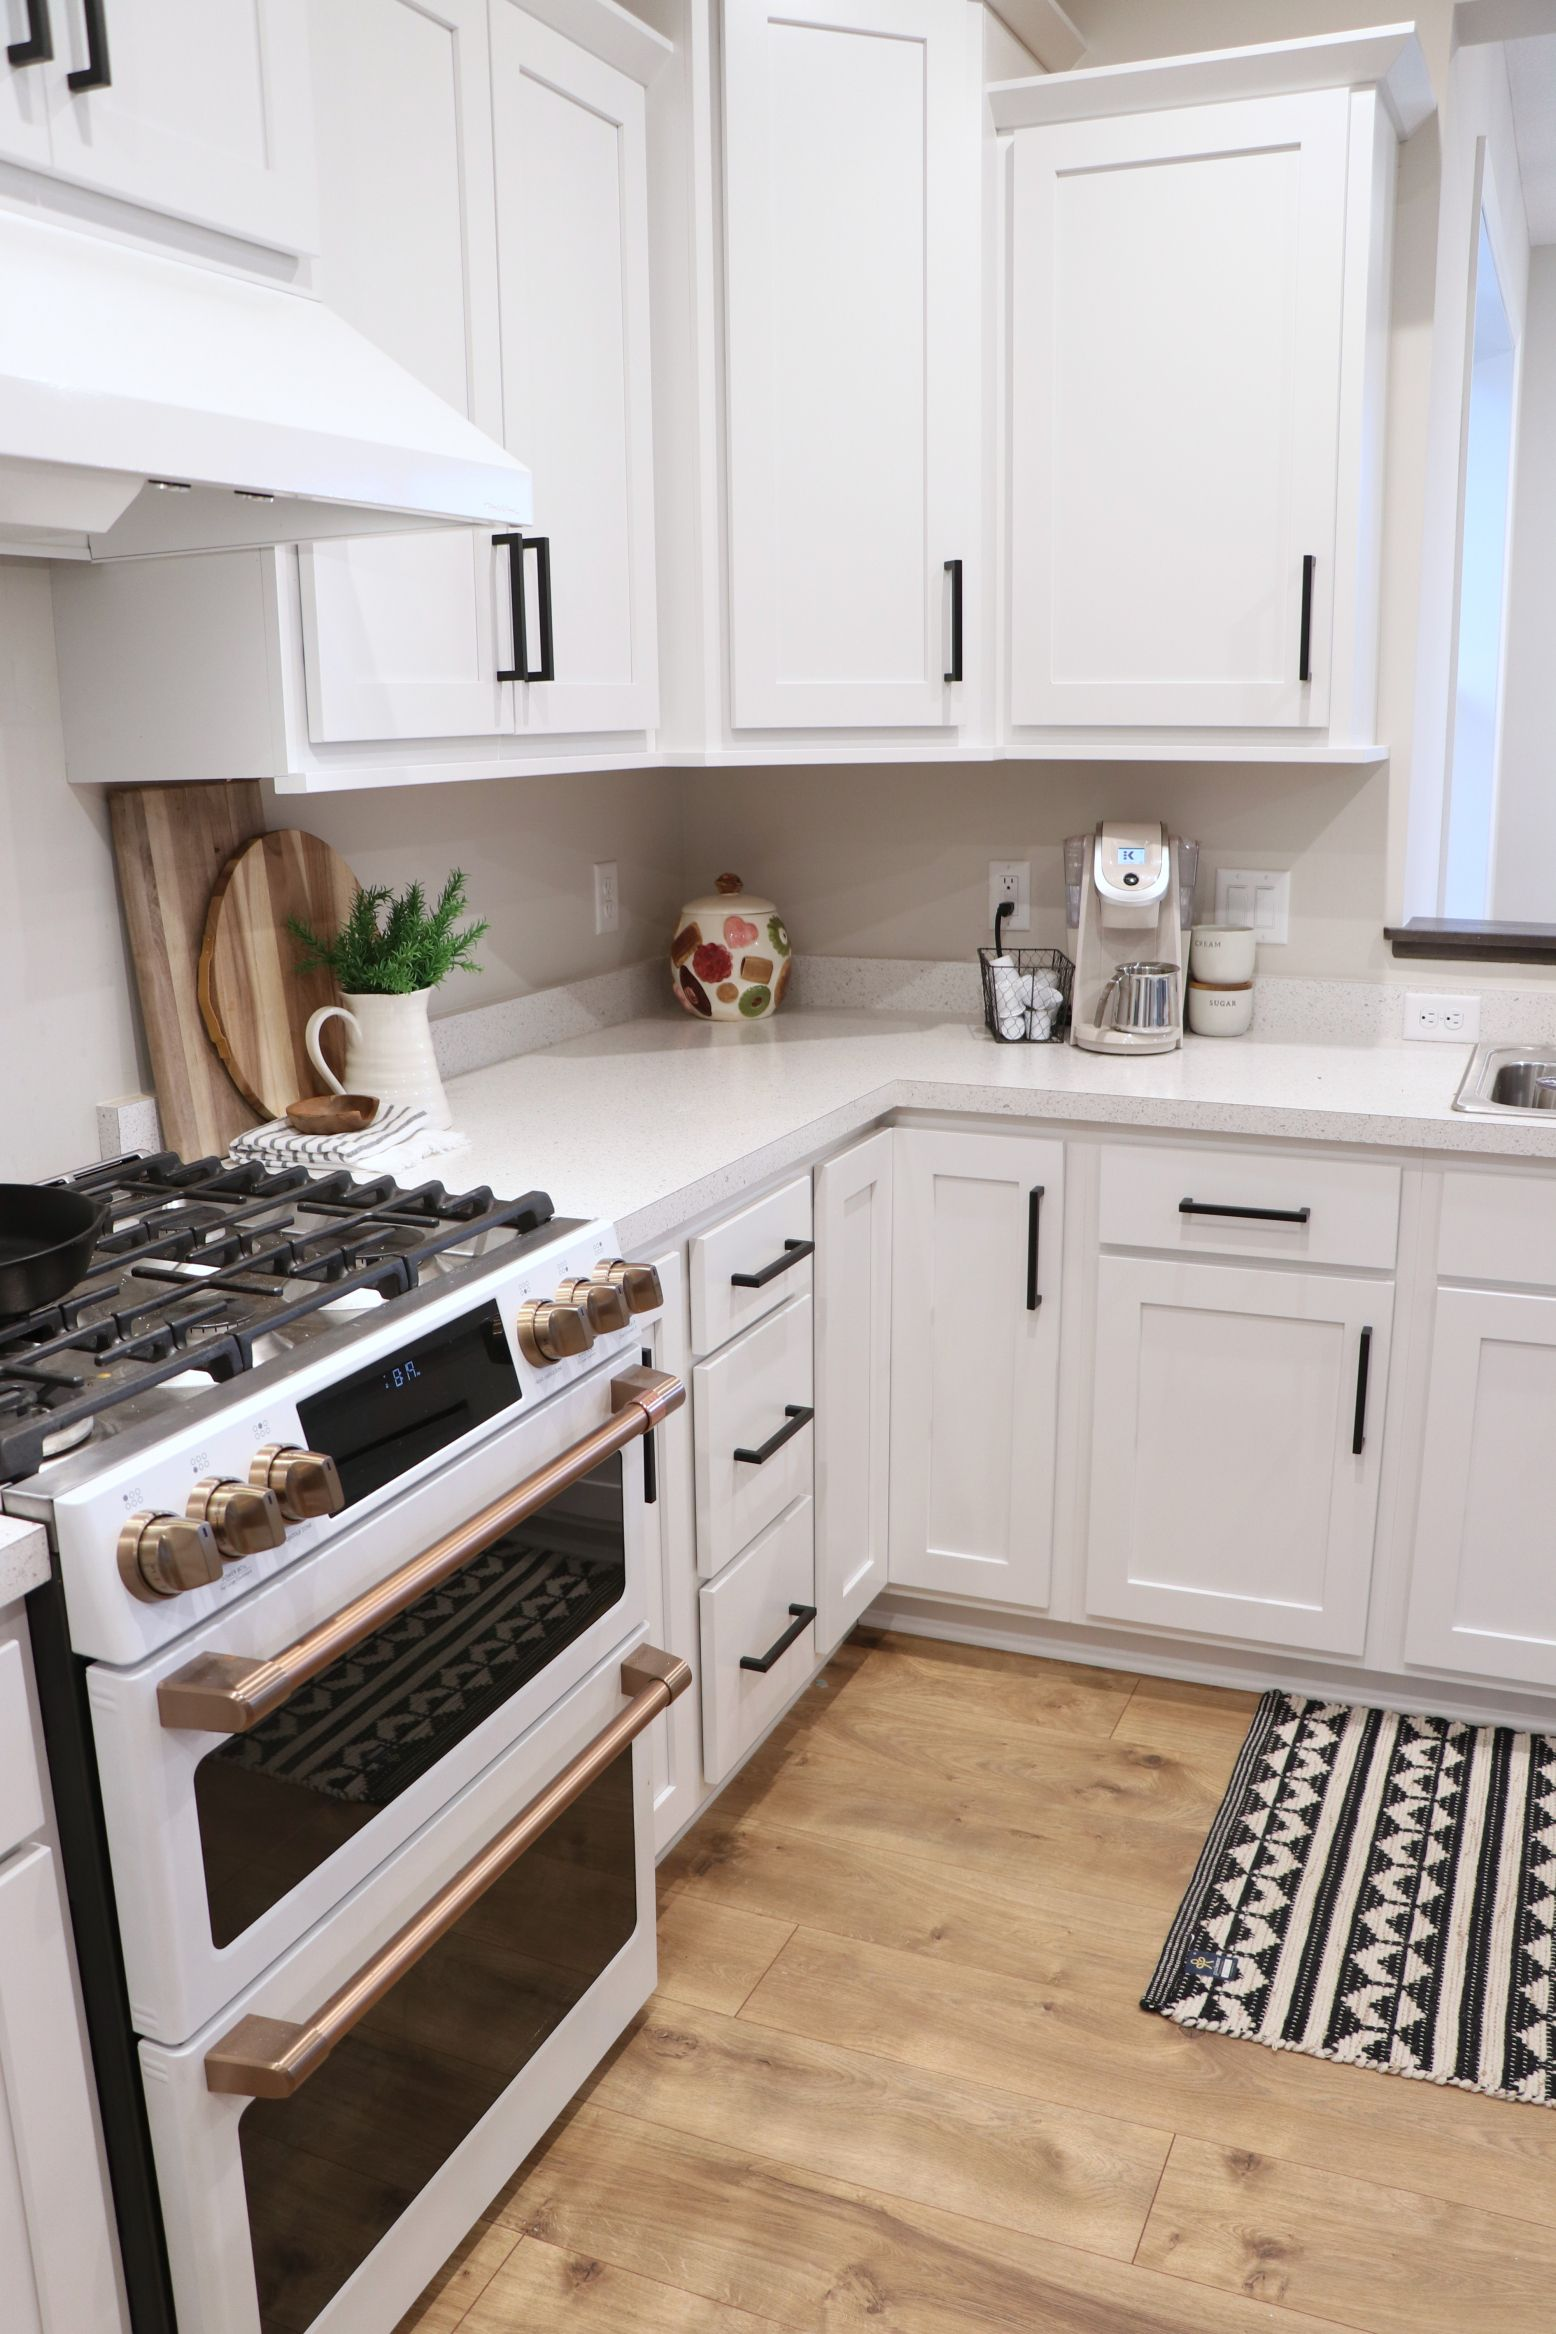 Diy Or Buy Cabinet Hardware Cjc Interiors Kitchen Cabinets Grey And White White Shaker Kitchen White Kitchen Appliances